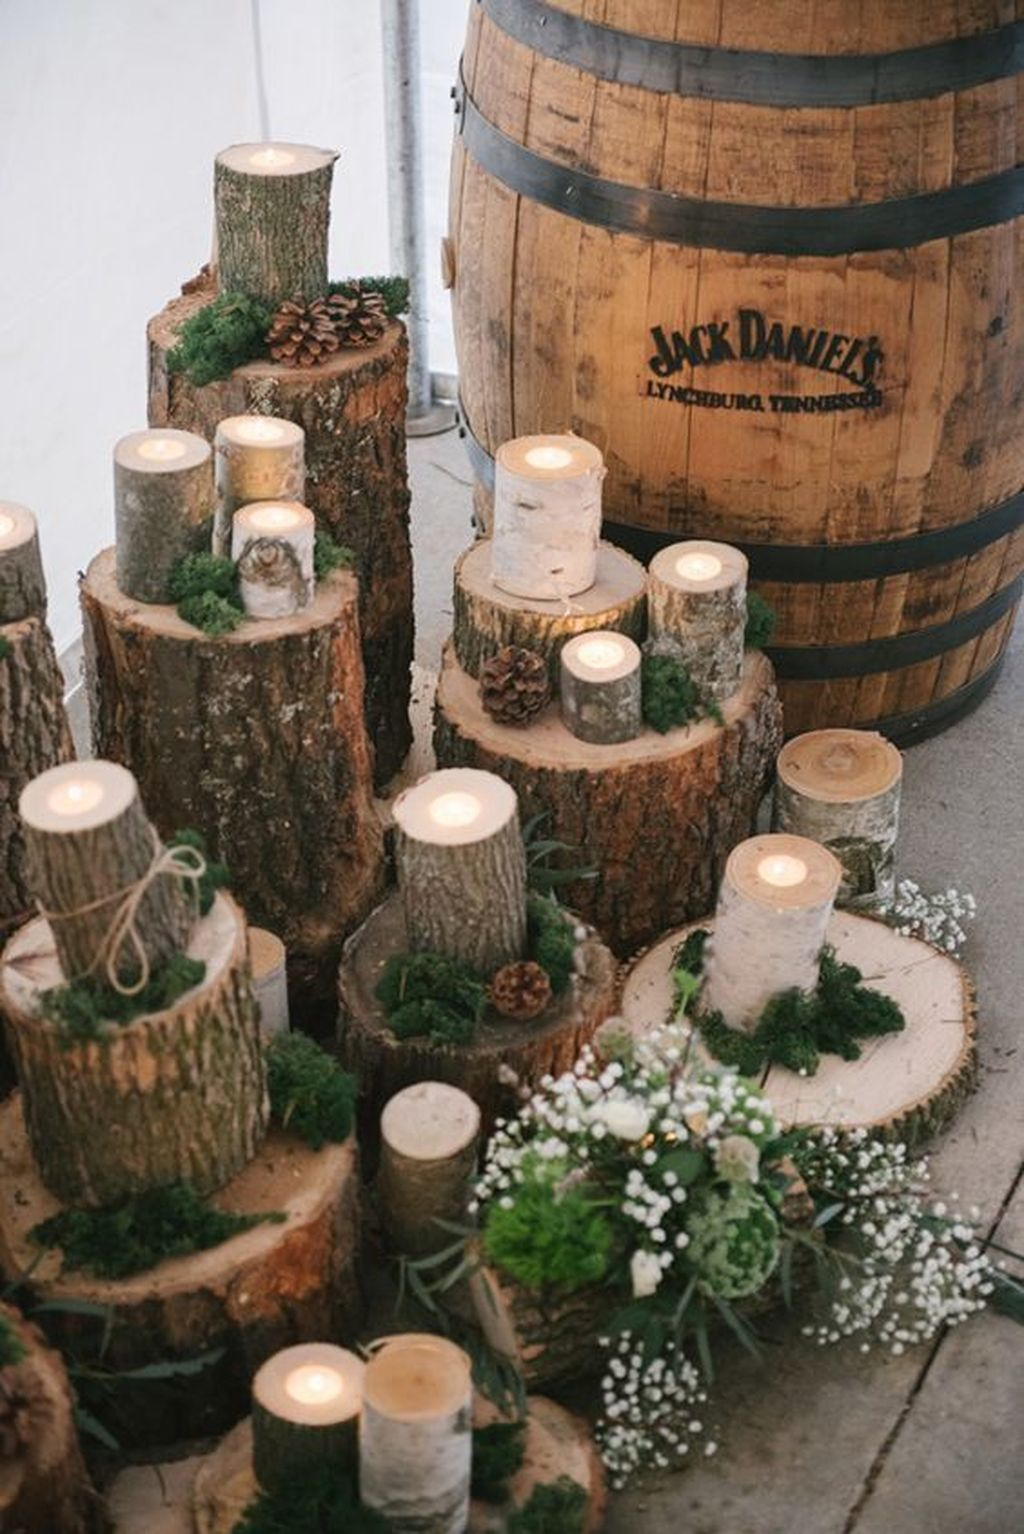 Inspiring Modern Rustic Christmas Centerpieces Ideas With Candles 36